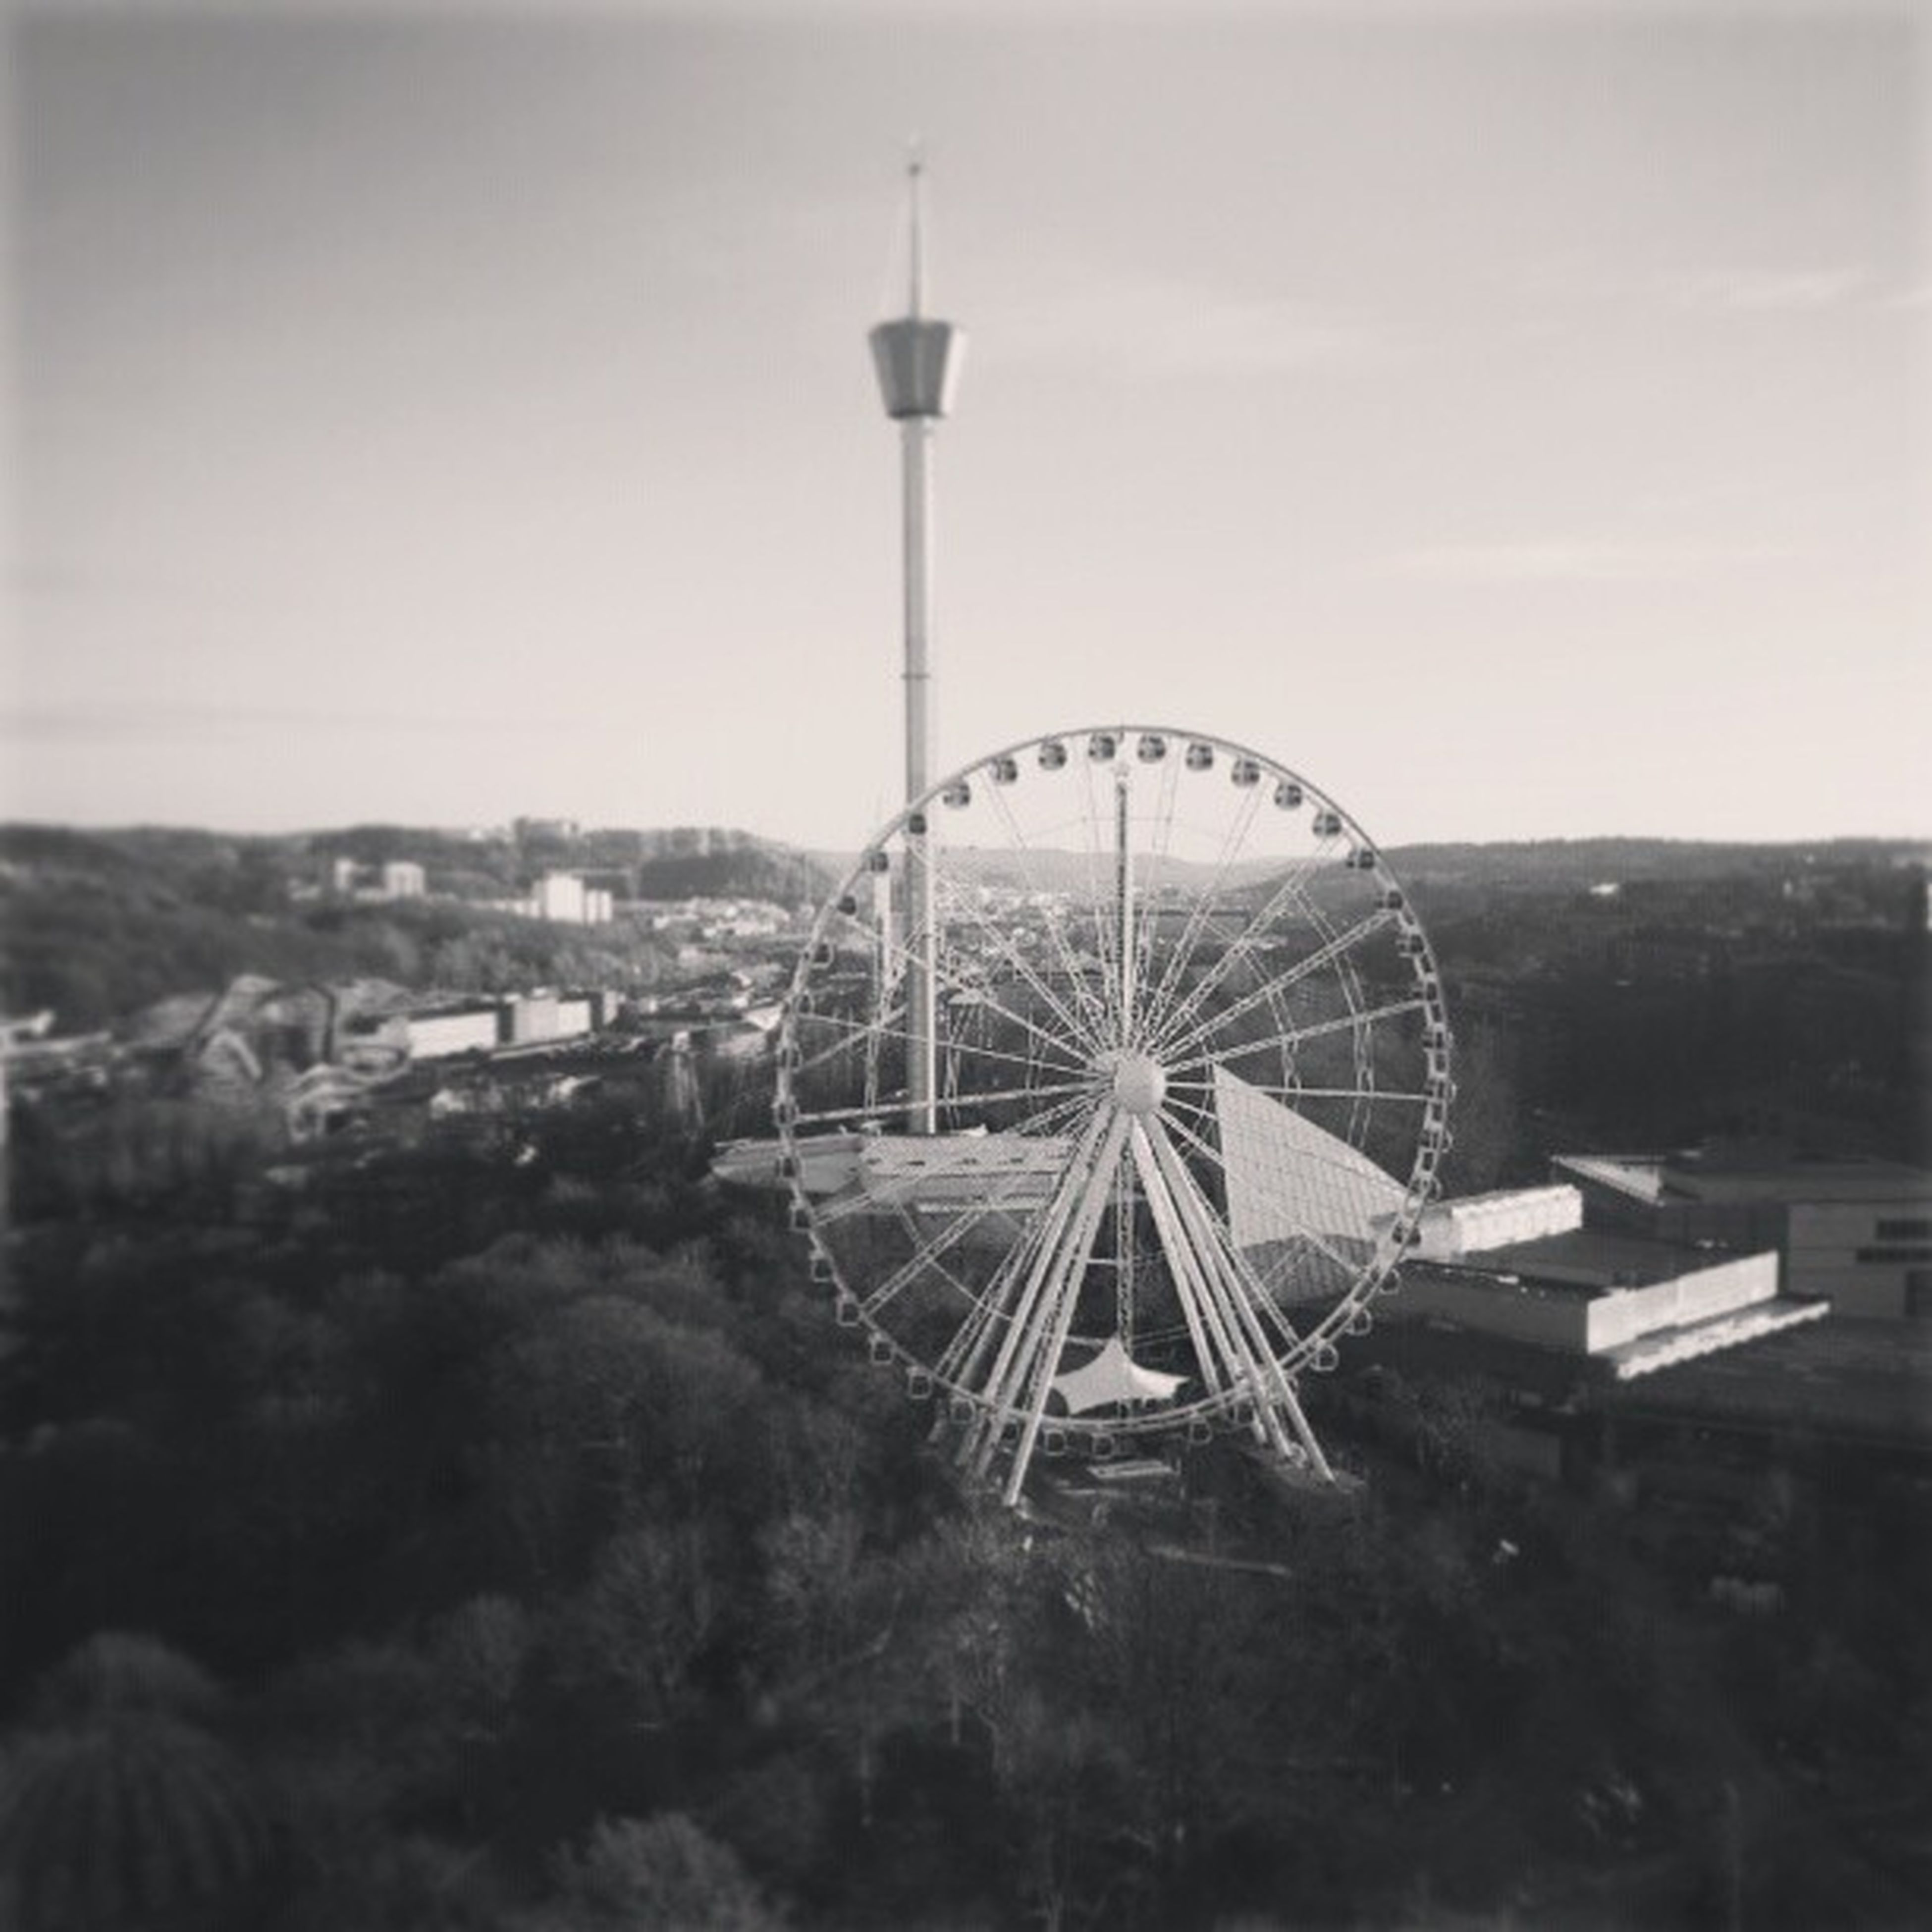 ferris wheel, amusement park, sky, amusement park ride, built structure, architecture, building exterior, arts culture and entertainment, outdoors, city, technology, tall - high, communications tower, no people, low angle view, day, tower, clear sky, cloud - sky, travel destinations